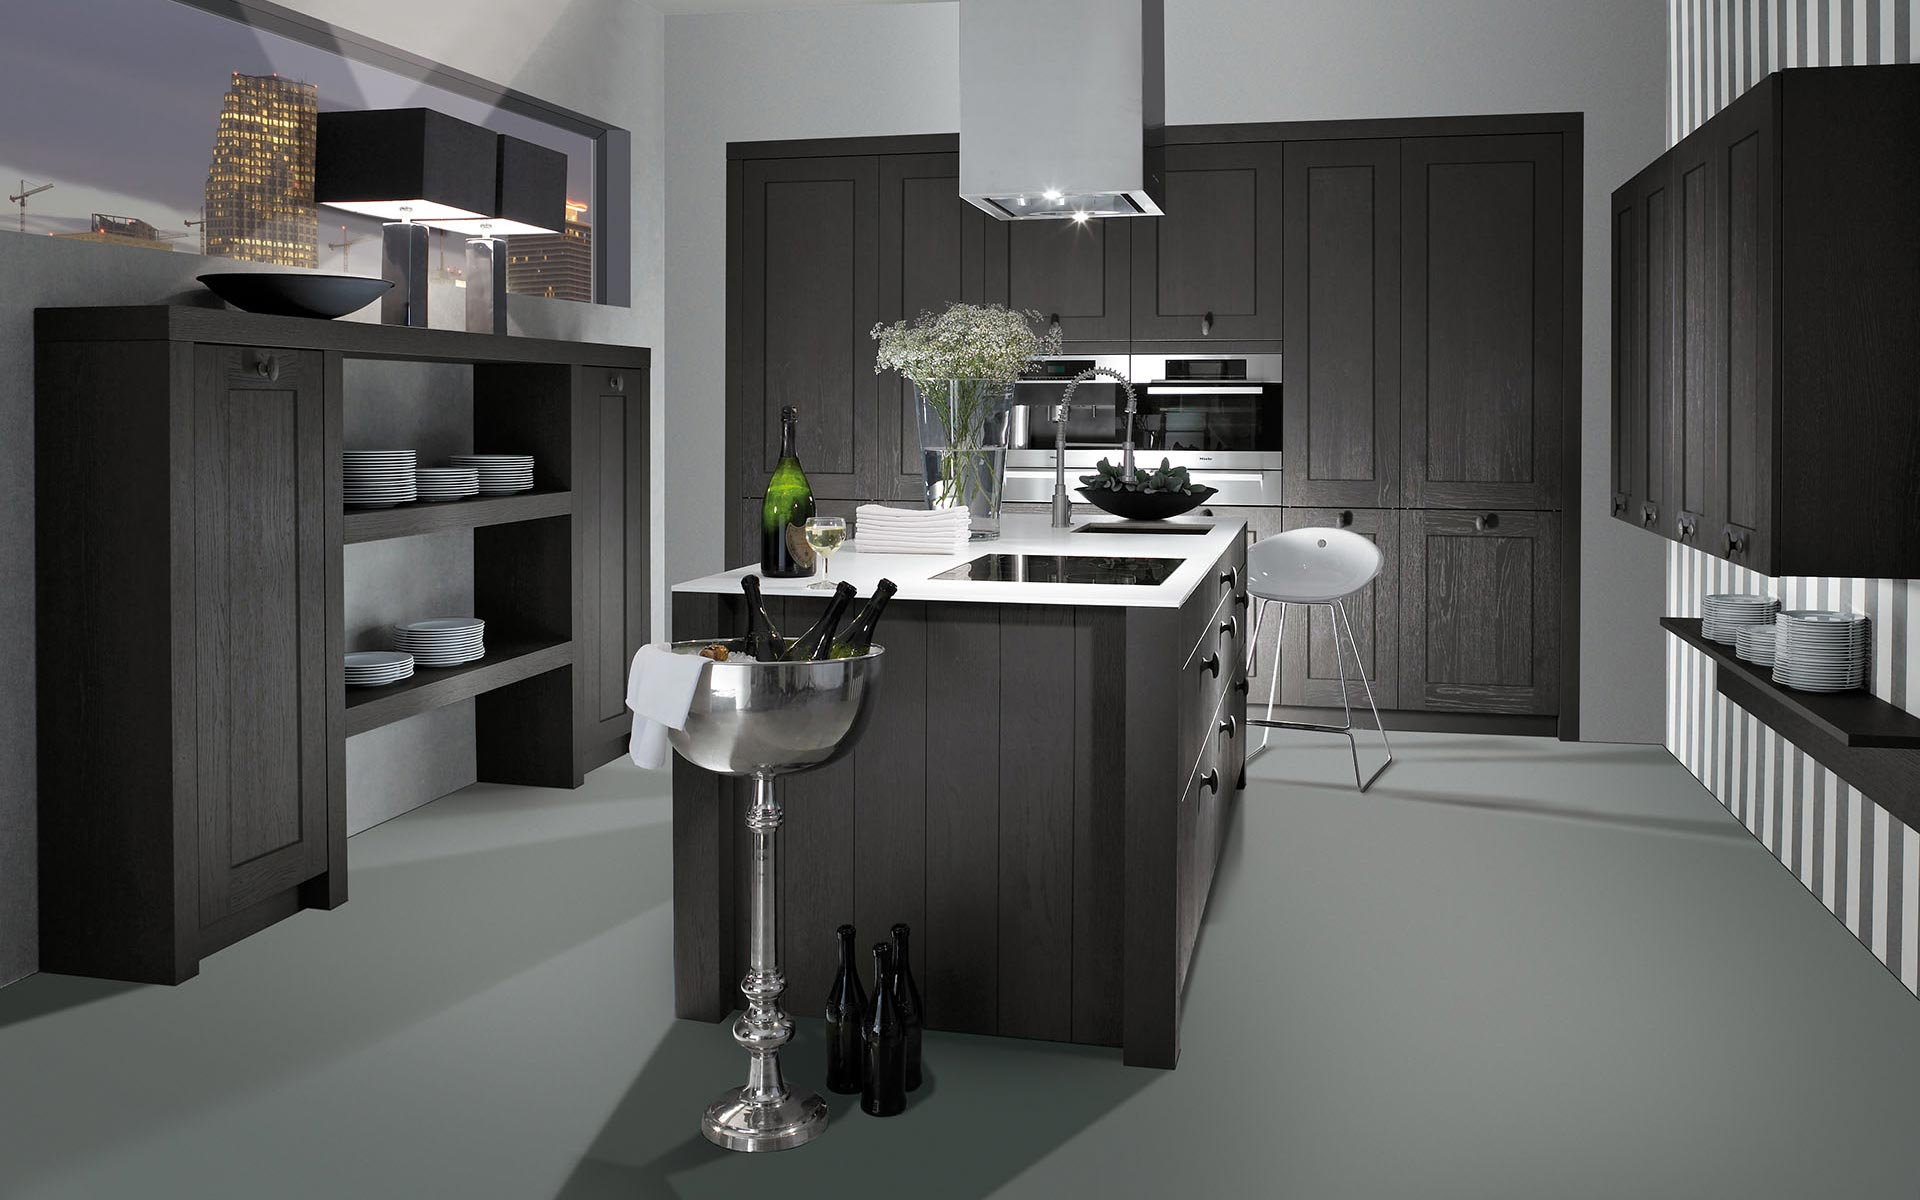 Toronto: Kitchens from Germany, Europe. Telaio Anticato Graphit